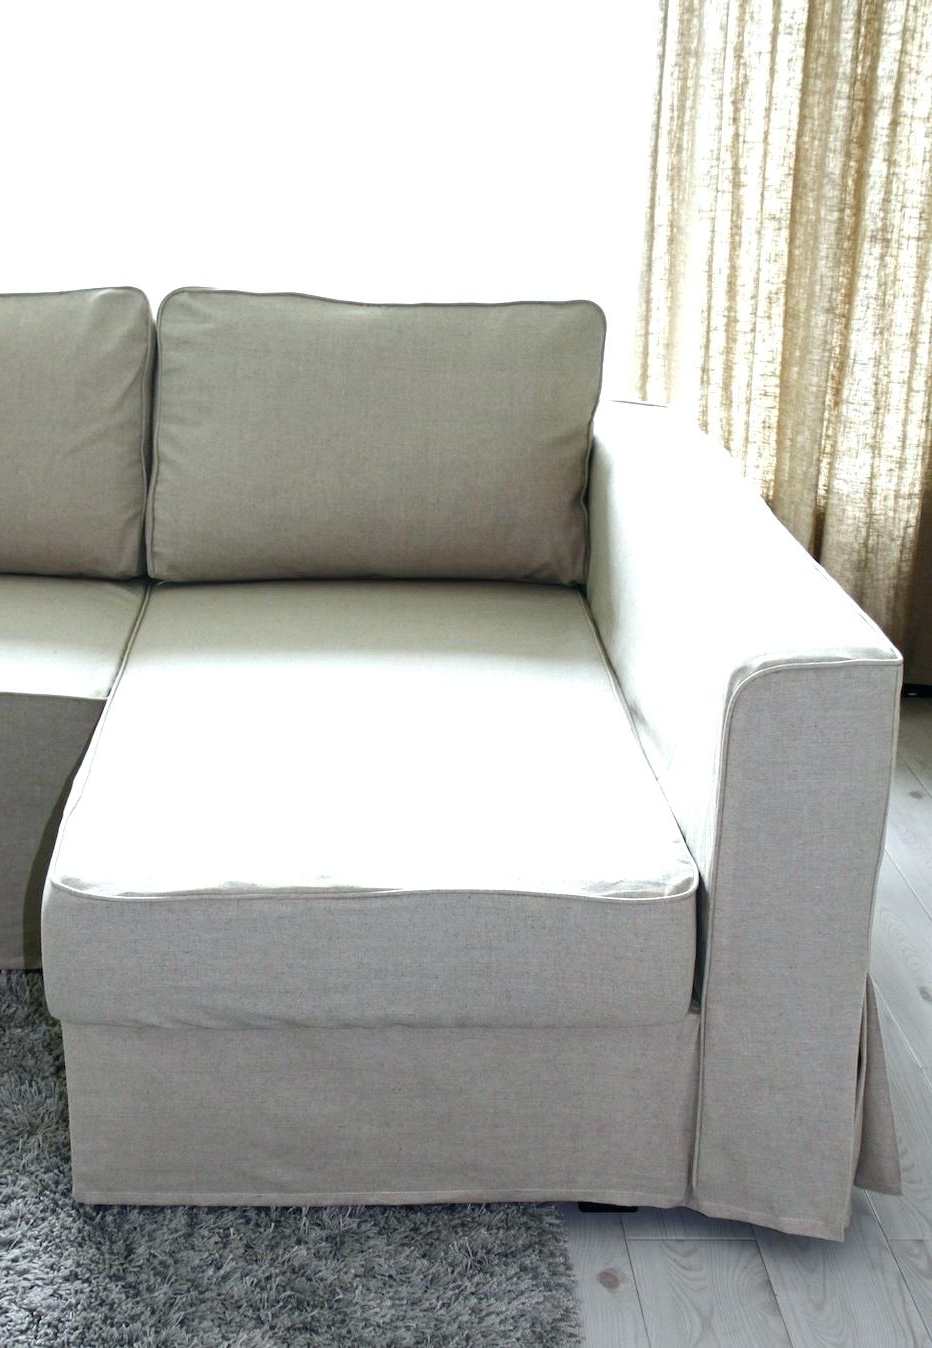 Chaises With Storage Regarding Current Chaise : Slipcovered Chaise Lounge Modern Slipcover Slipcovers For (View 9 of 15)